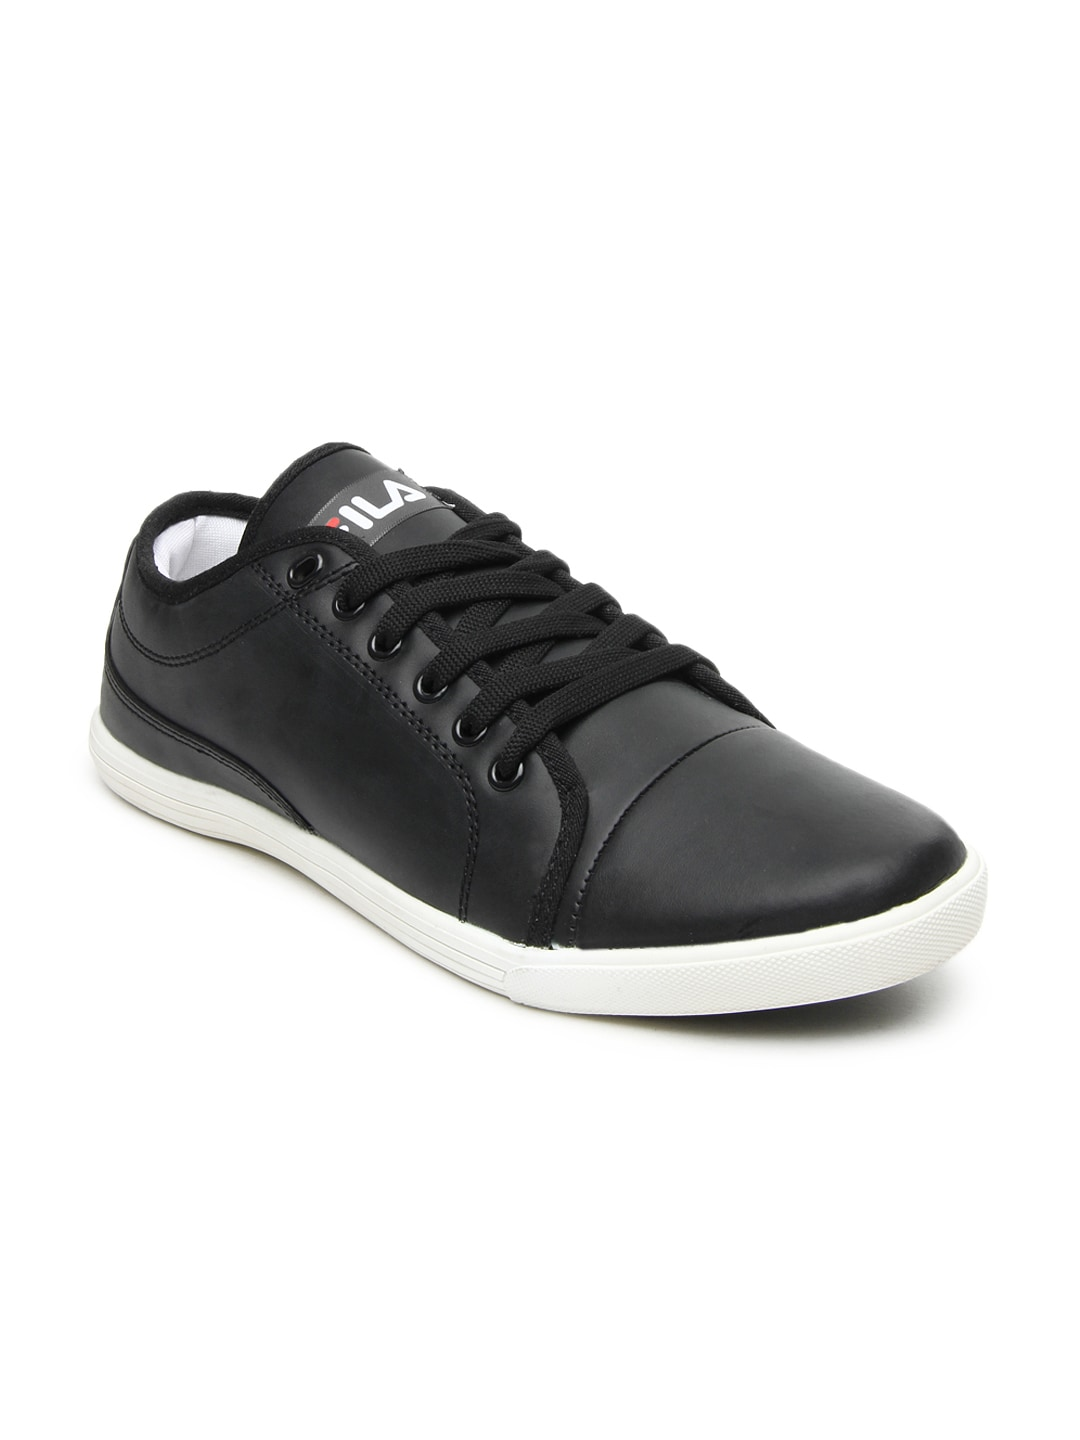 Fila Shoes Online - Buy Fila Shoes at India s Best Online